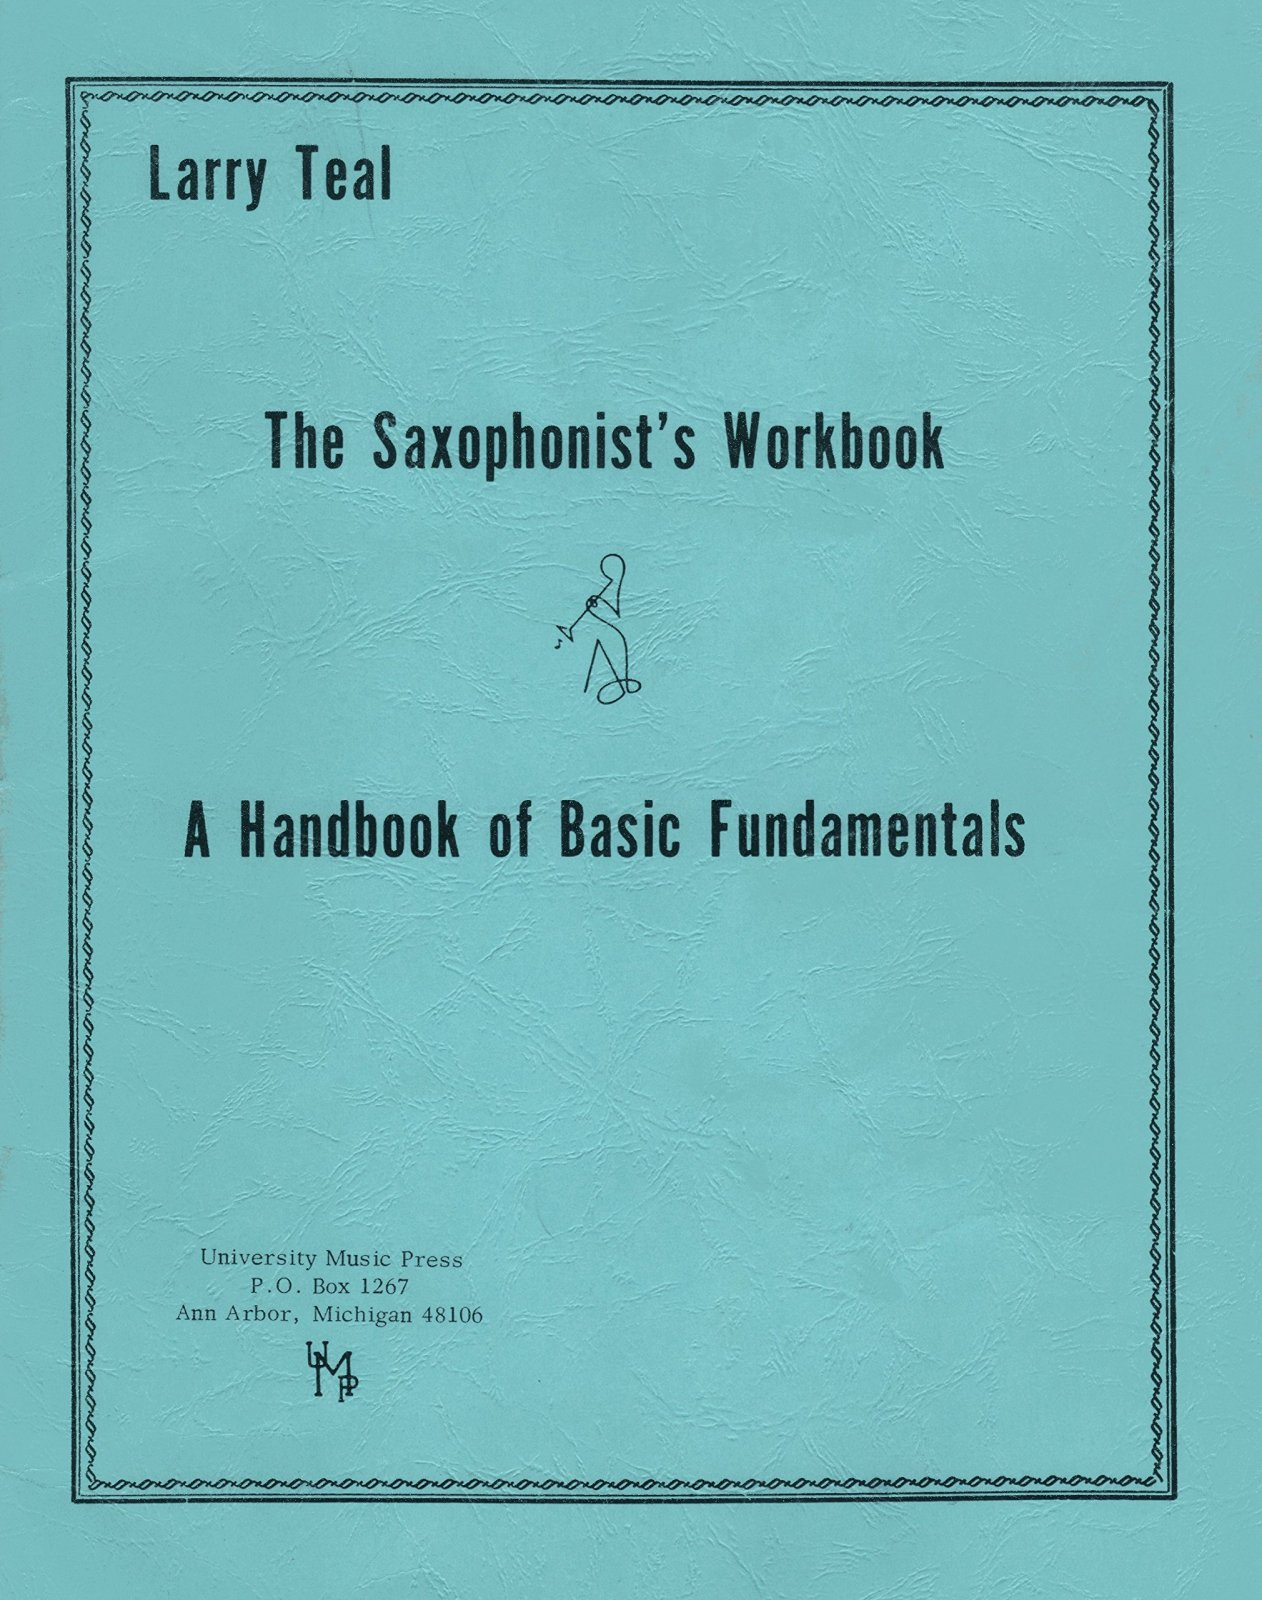 Teal, Larry: The Saxophonist's Workbook